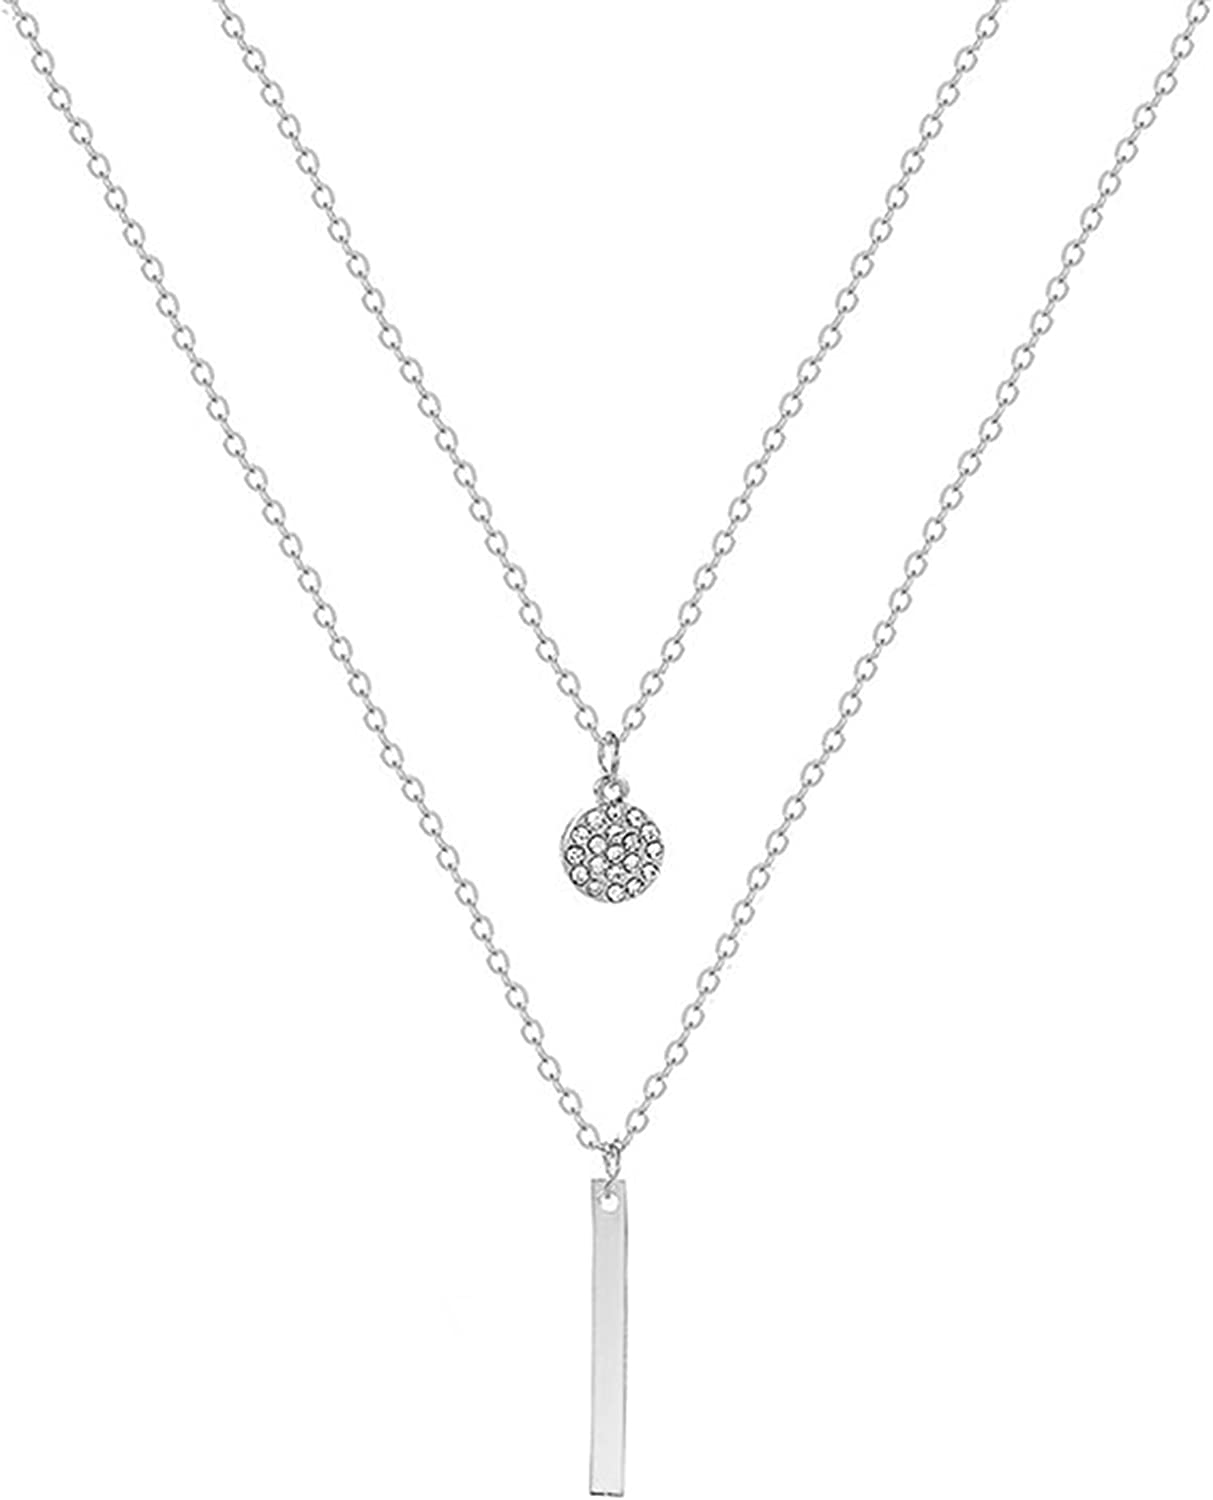 Underleaf Dot Vertical Bar Double Layered Long Chain Choker Minimalist Y Necklace for Women Ladies Jewelry Gifts